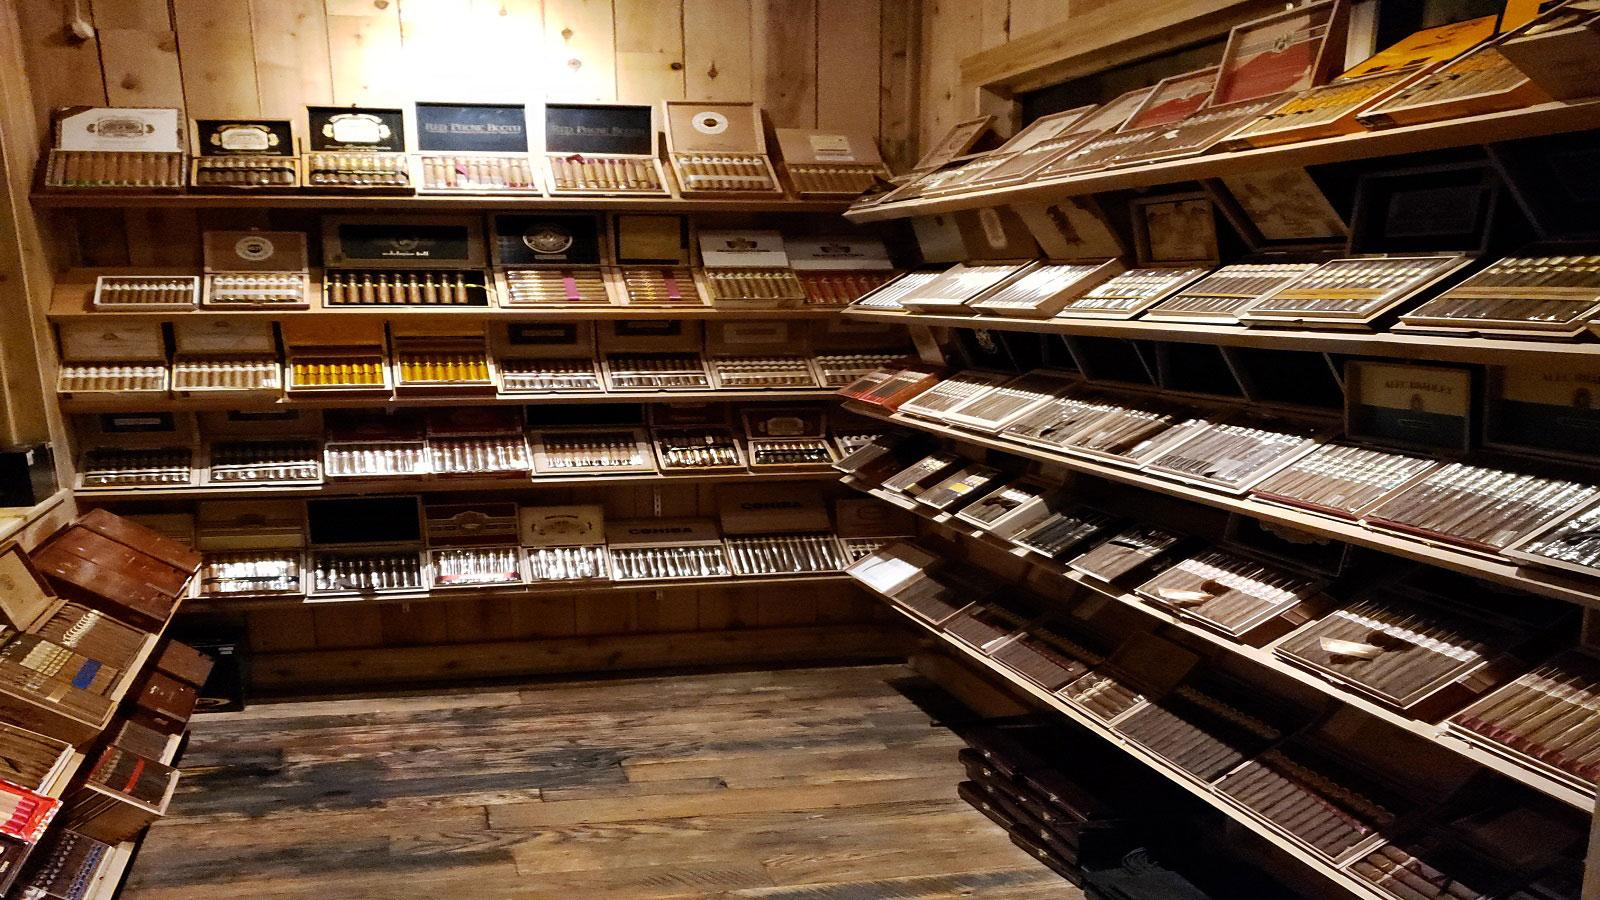 The humidor is well-stocked with more than 100 different cigars.